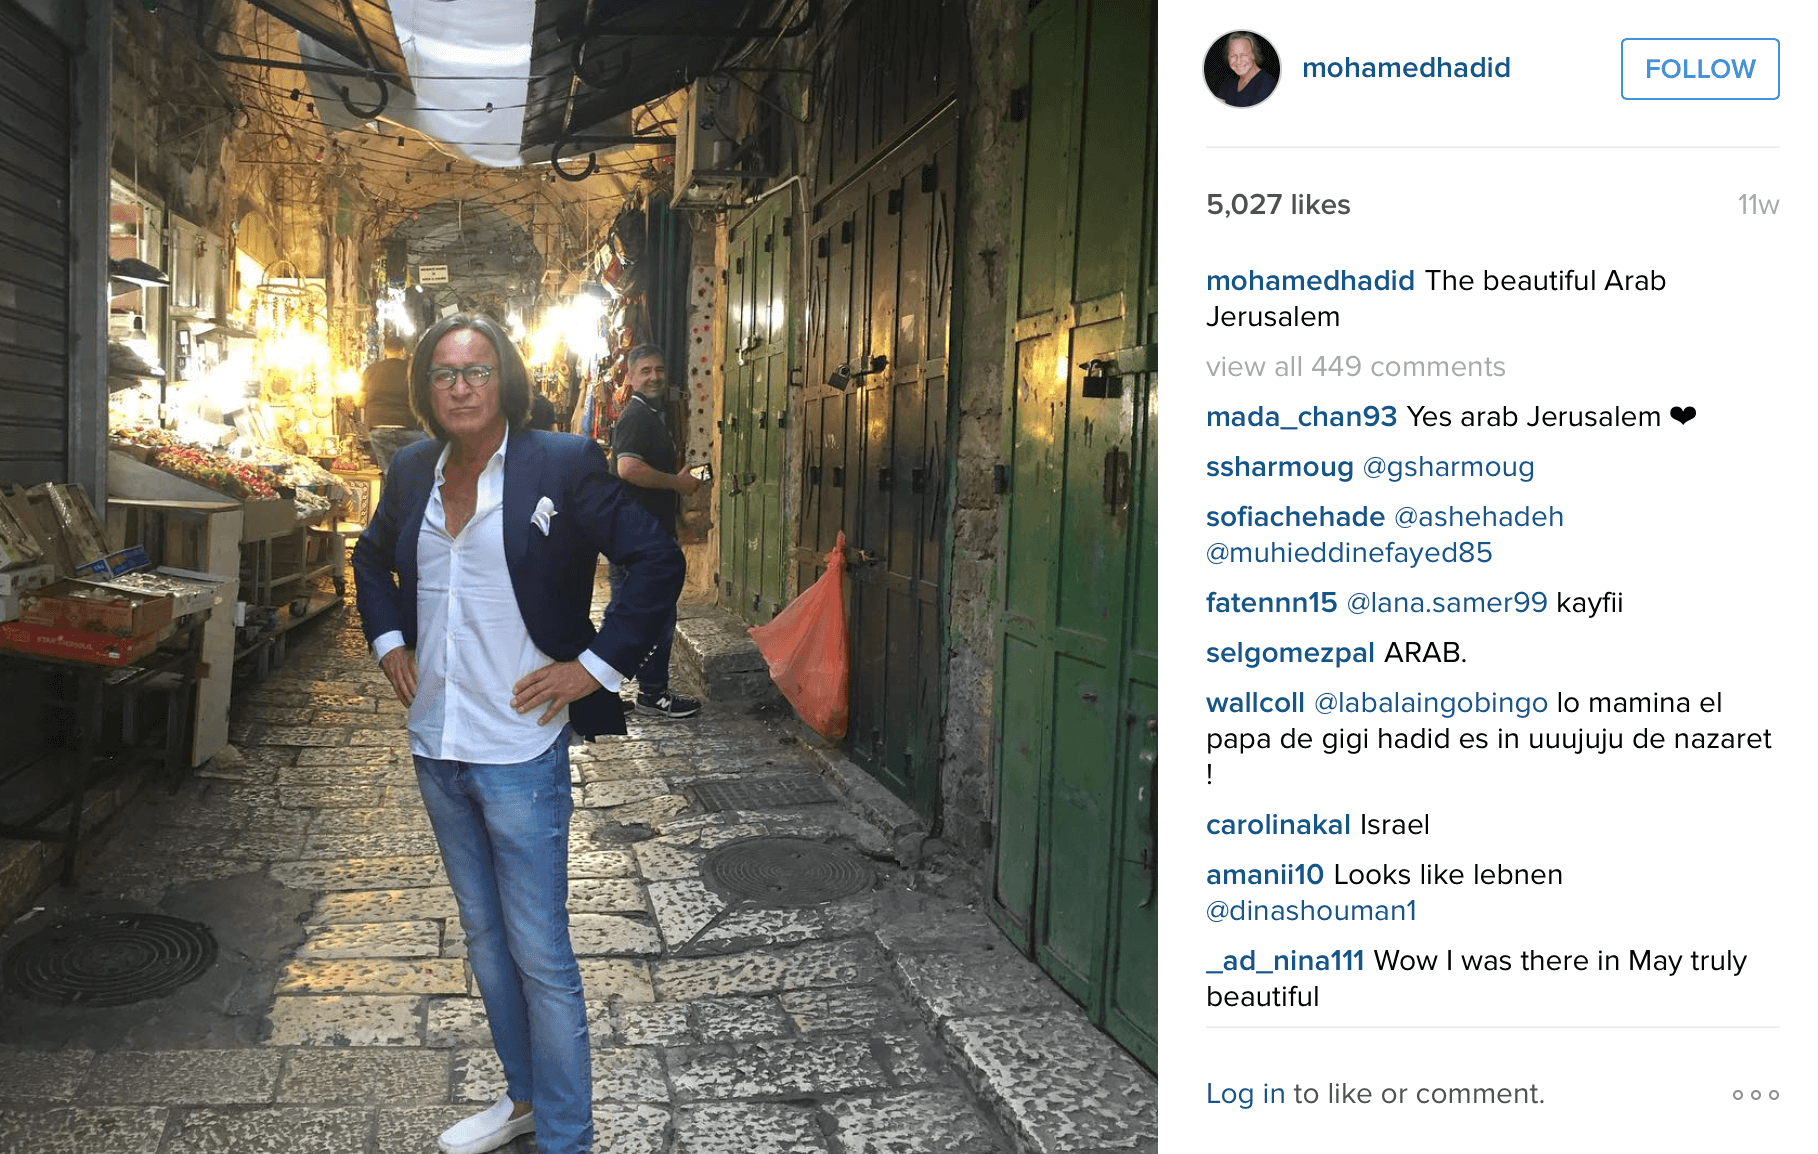 Mohamed Hadid on a recent vacation in Jerusalem (Photo: Instagram/Mohamed Hadid)